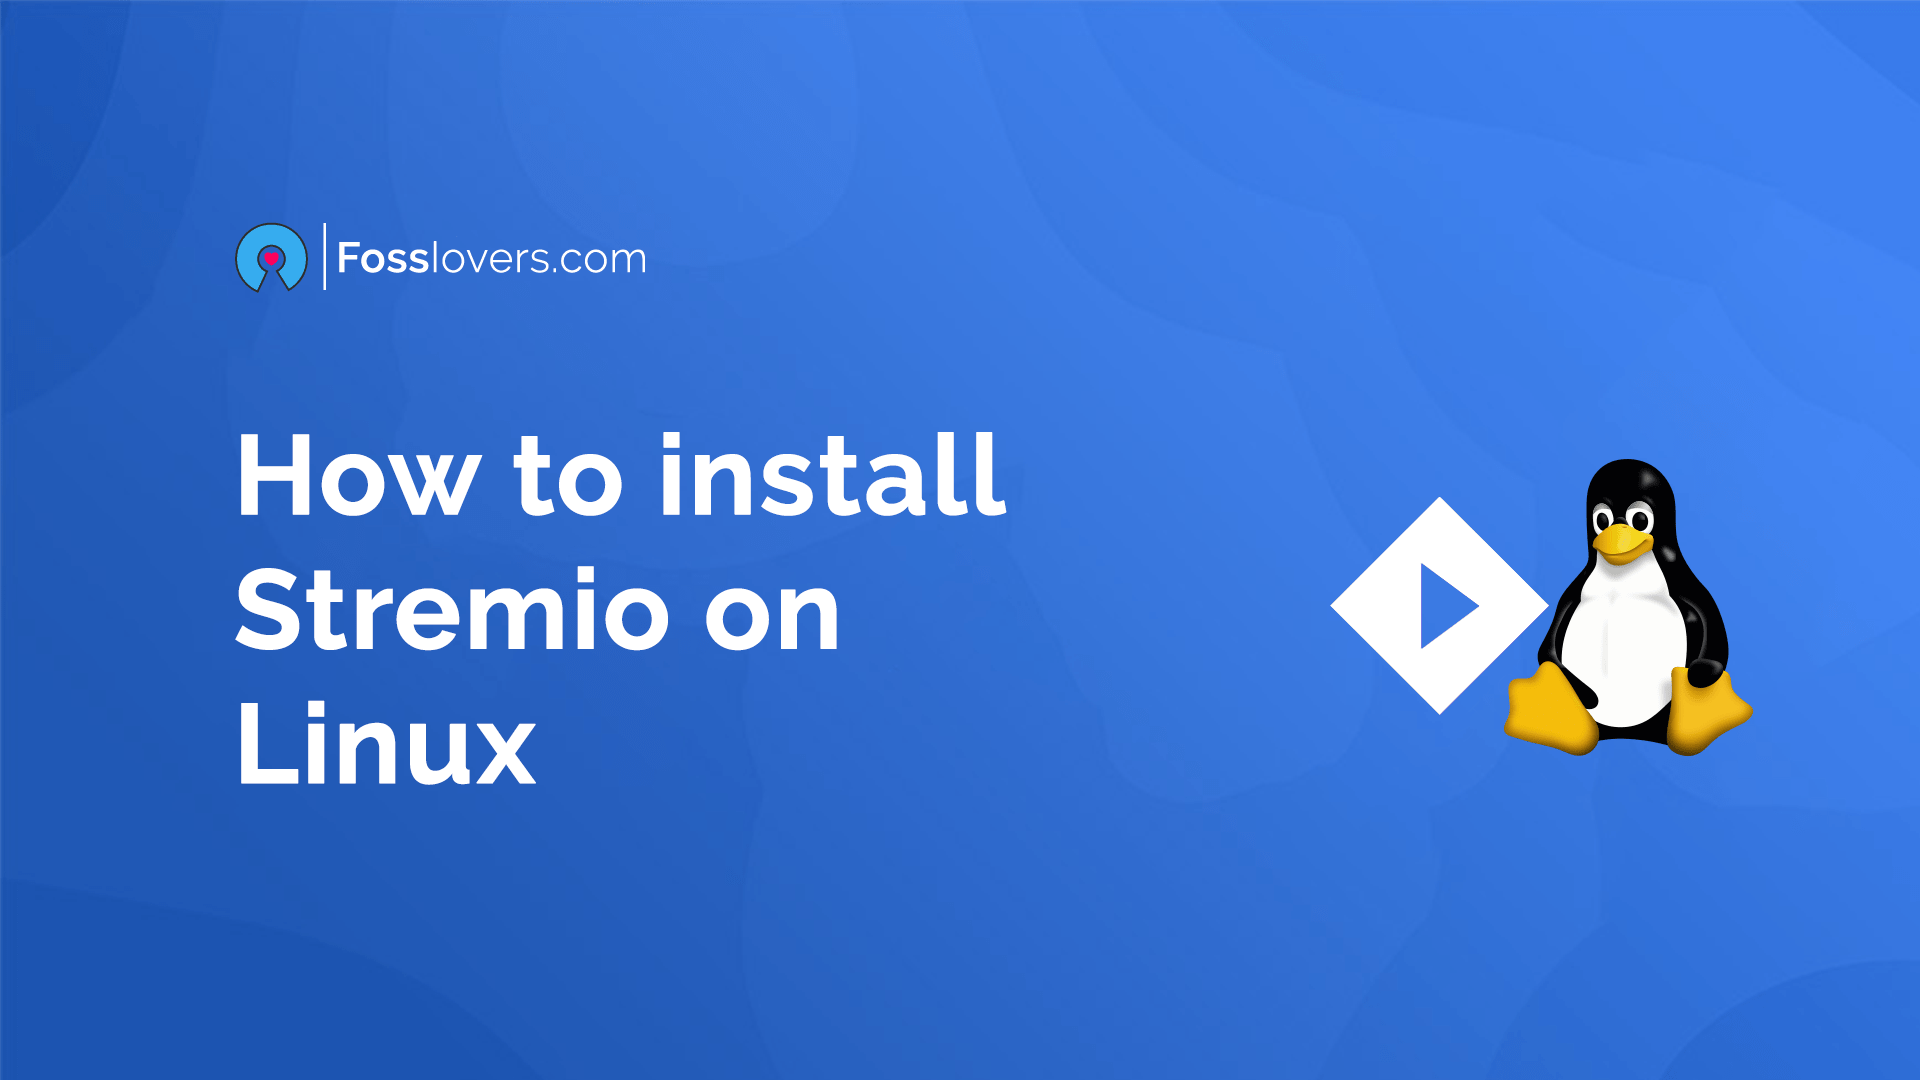 How to install Stremio on Linux